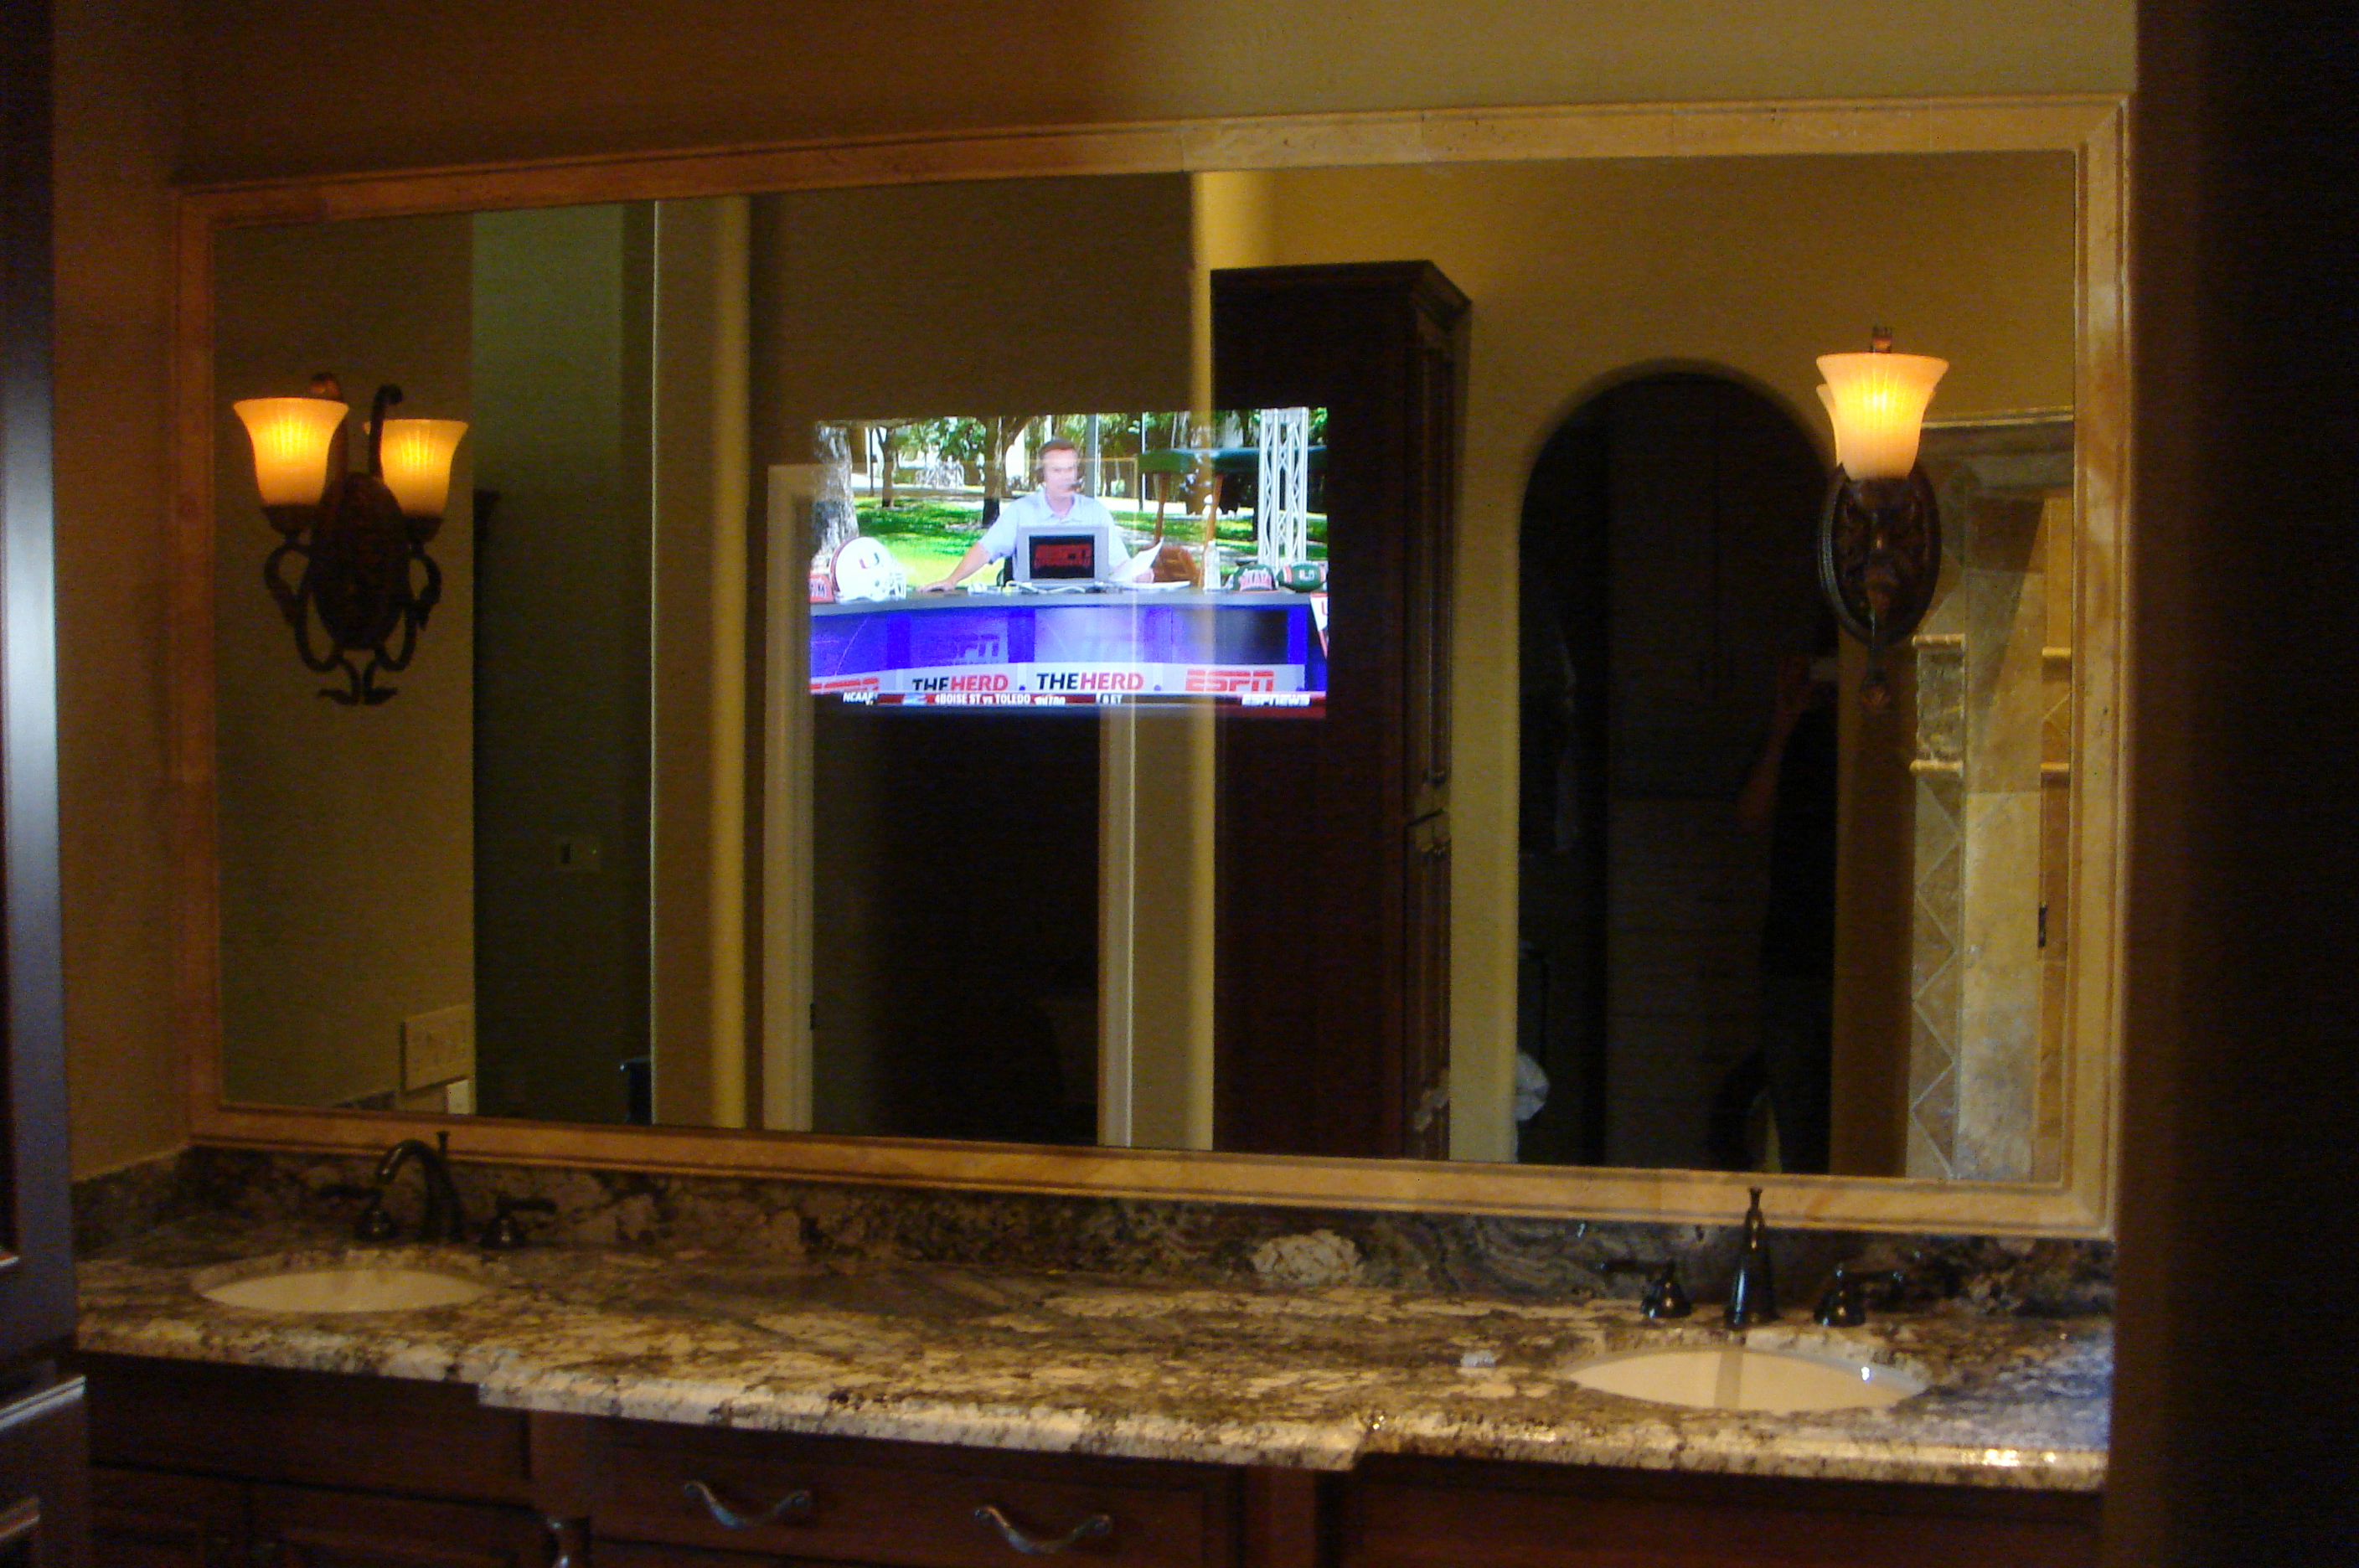 Bathroom Mirror With Tv tv behind bathroom mirror – ifll